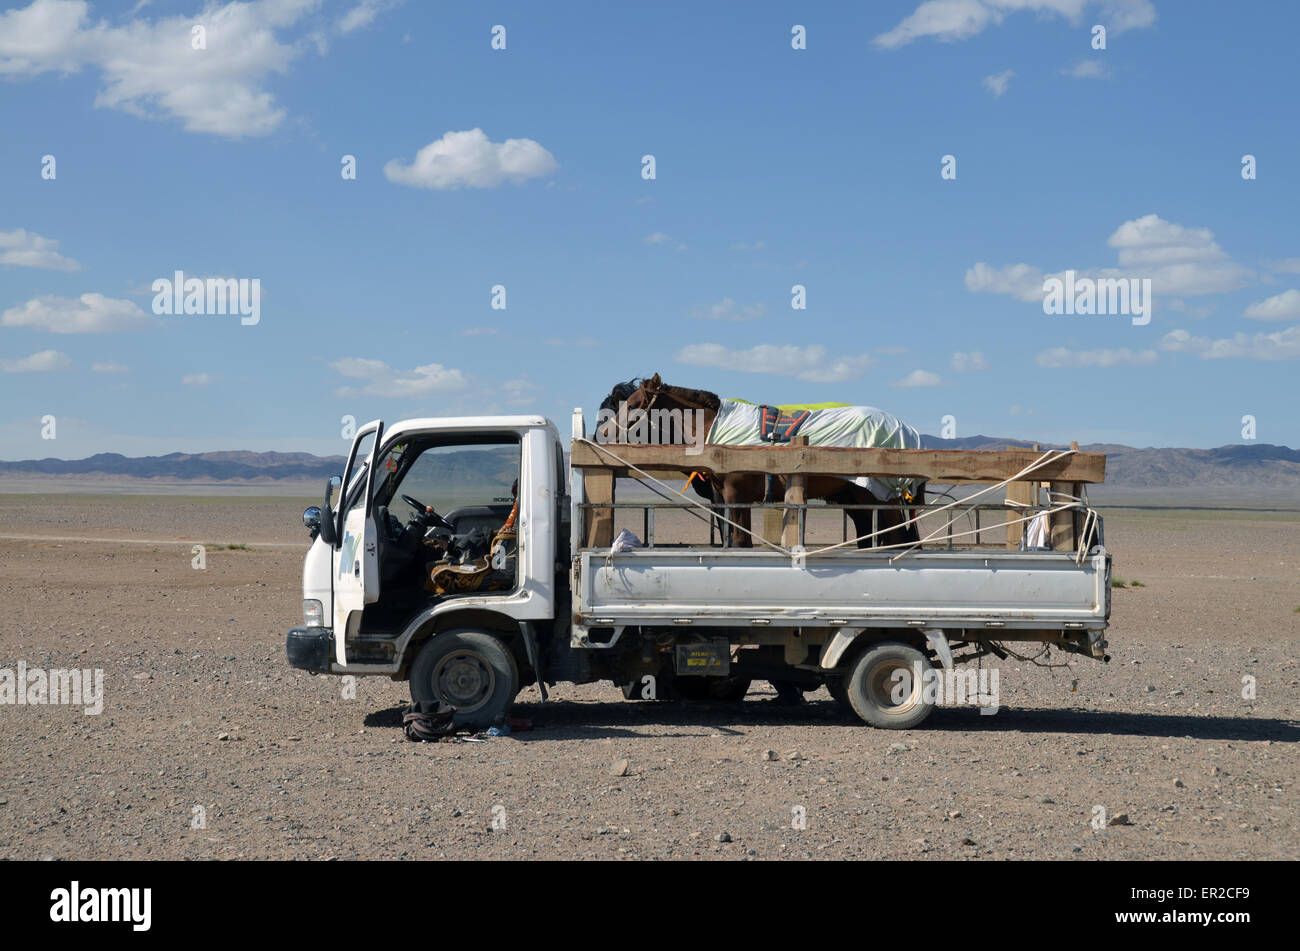 A truck loaded with horses in the Gobi desert, southern Mongolia - Stock Image